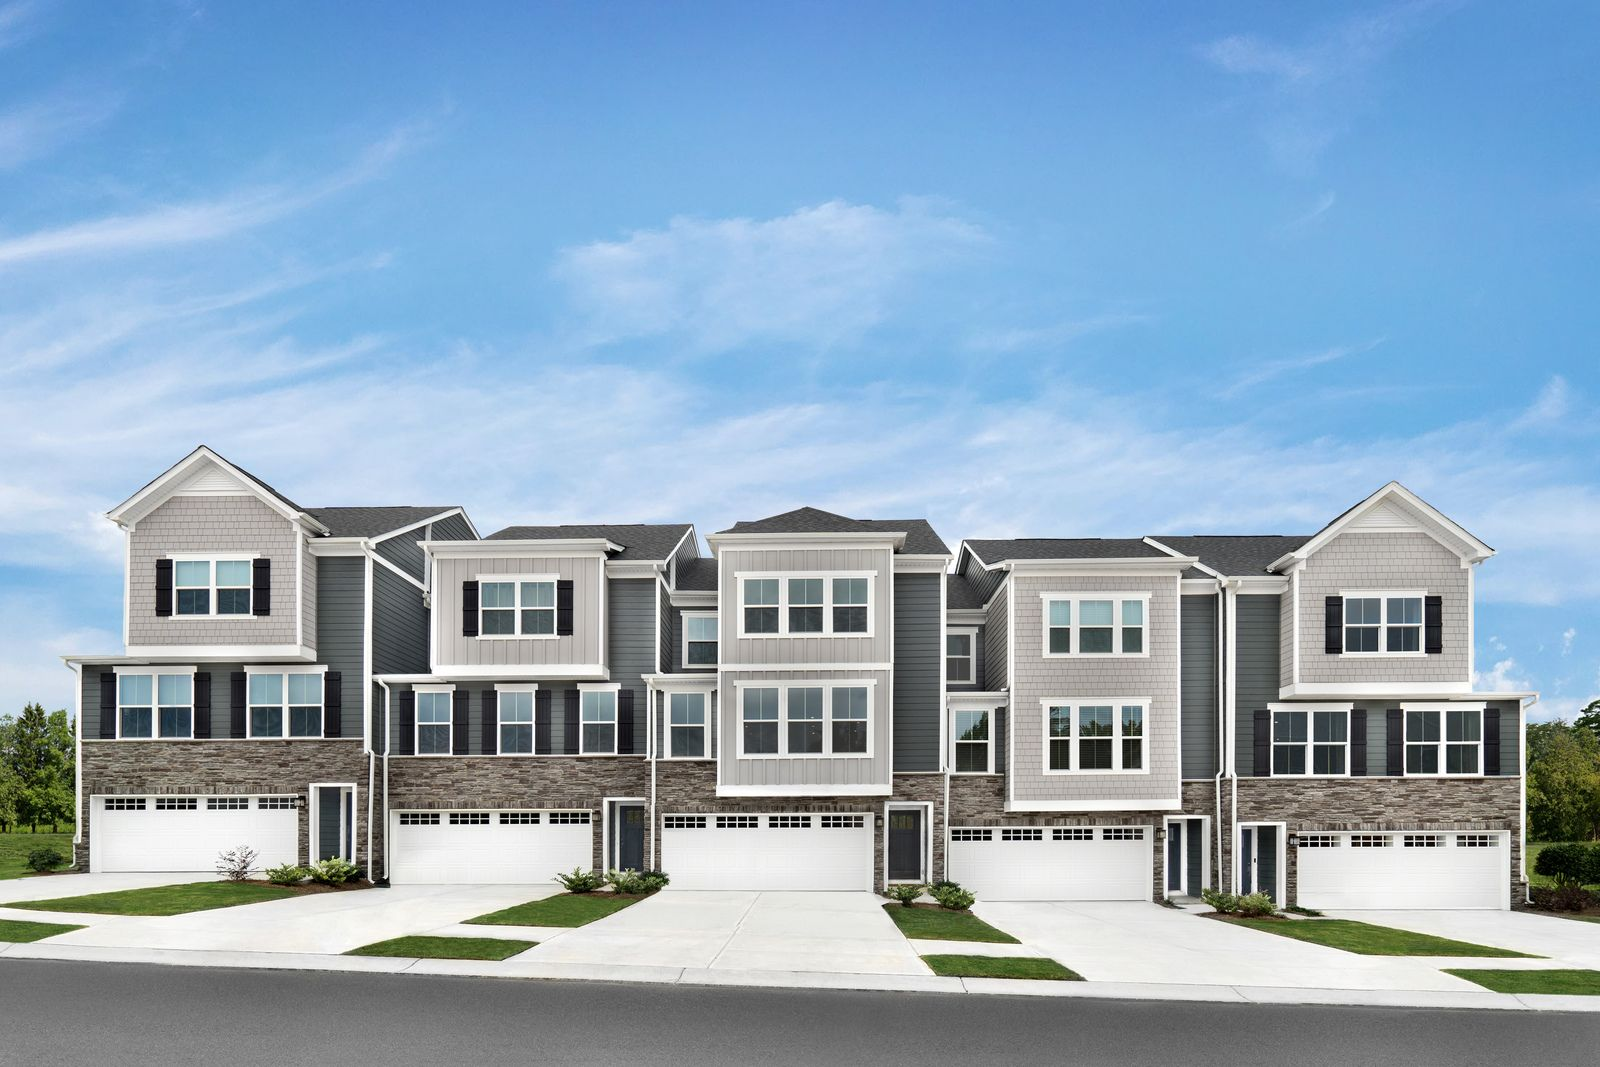 Luxury Townhomes Walkable to Lake Wylie and Popular Restaurants:Live in your dream space close to Lake Wylie, restaurants and shopping, and160—Schedule a visit to learn more!